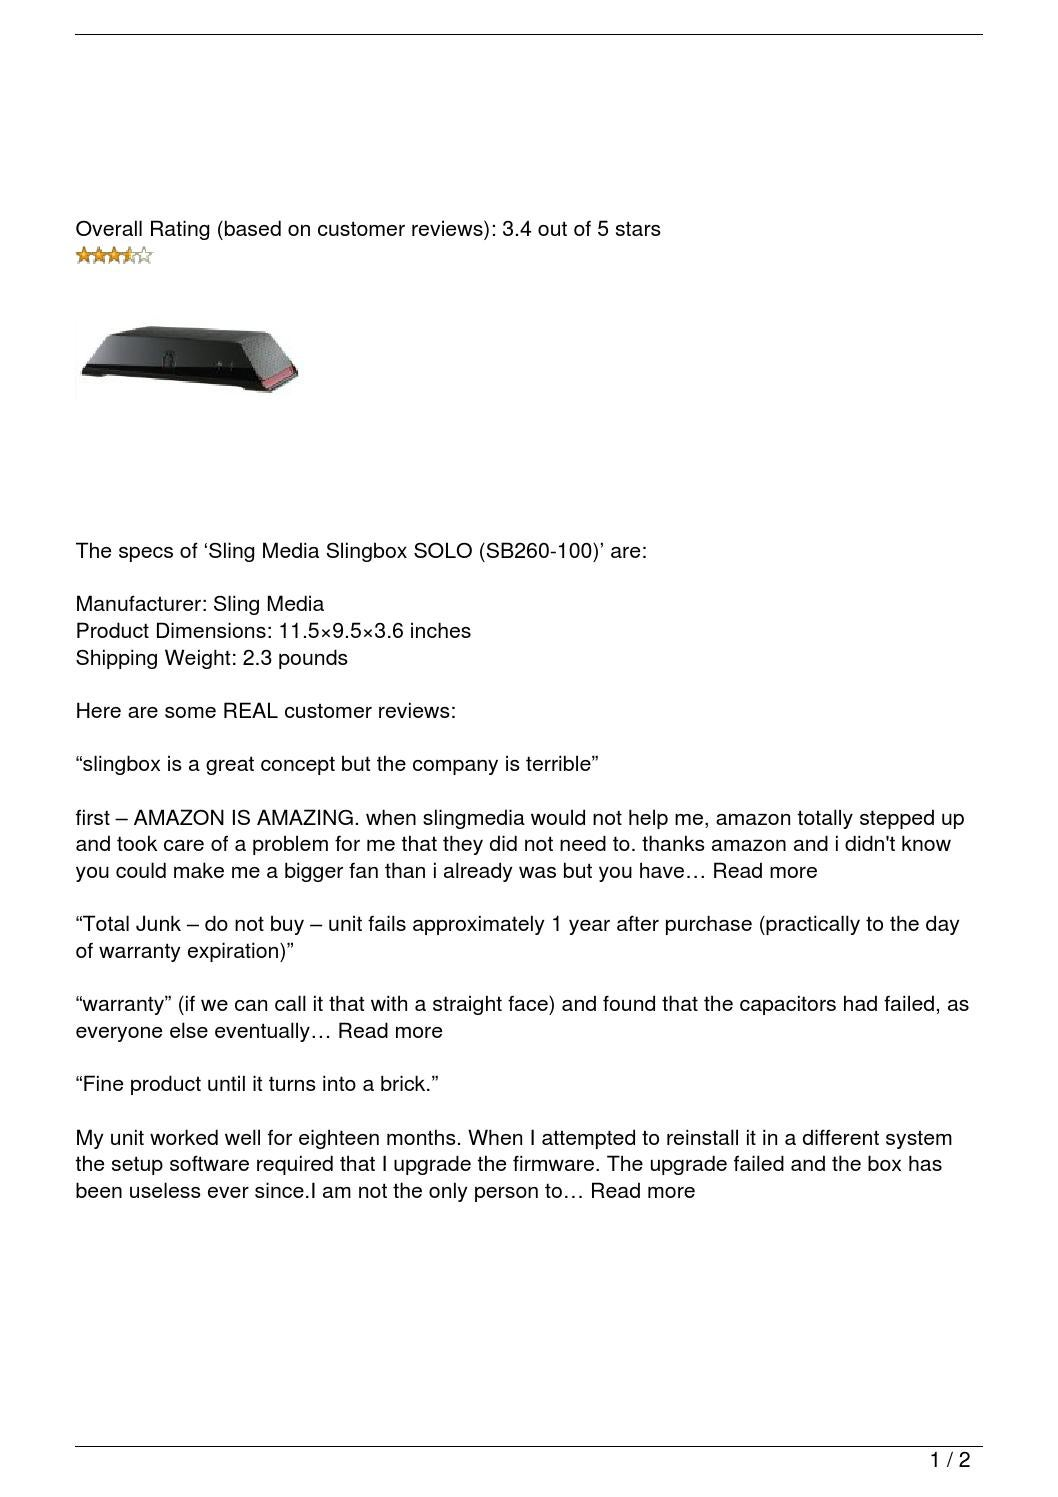 Sling Media Slingbox SOLO (SB260-100) Review by Billy - issuu